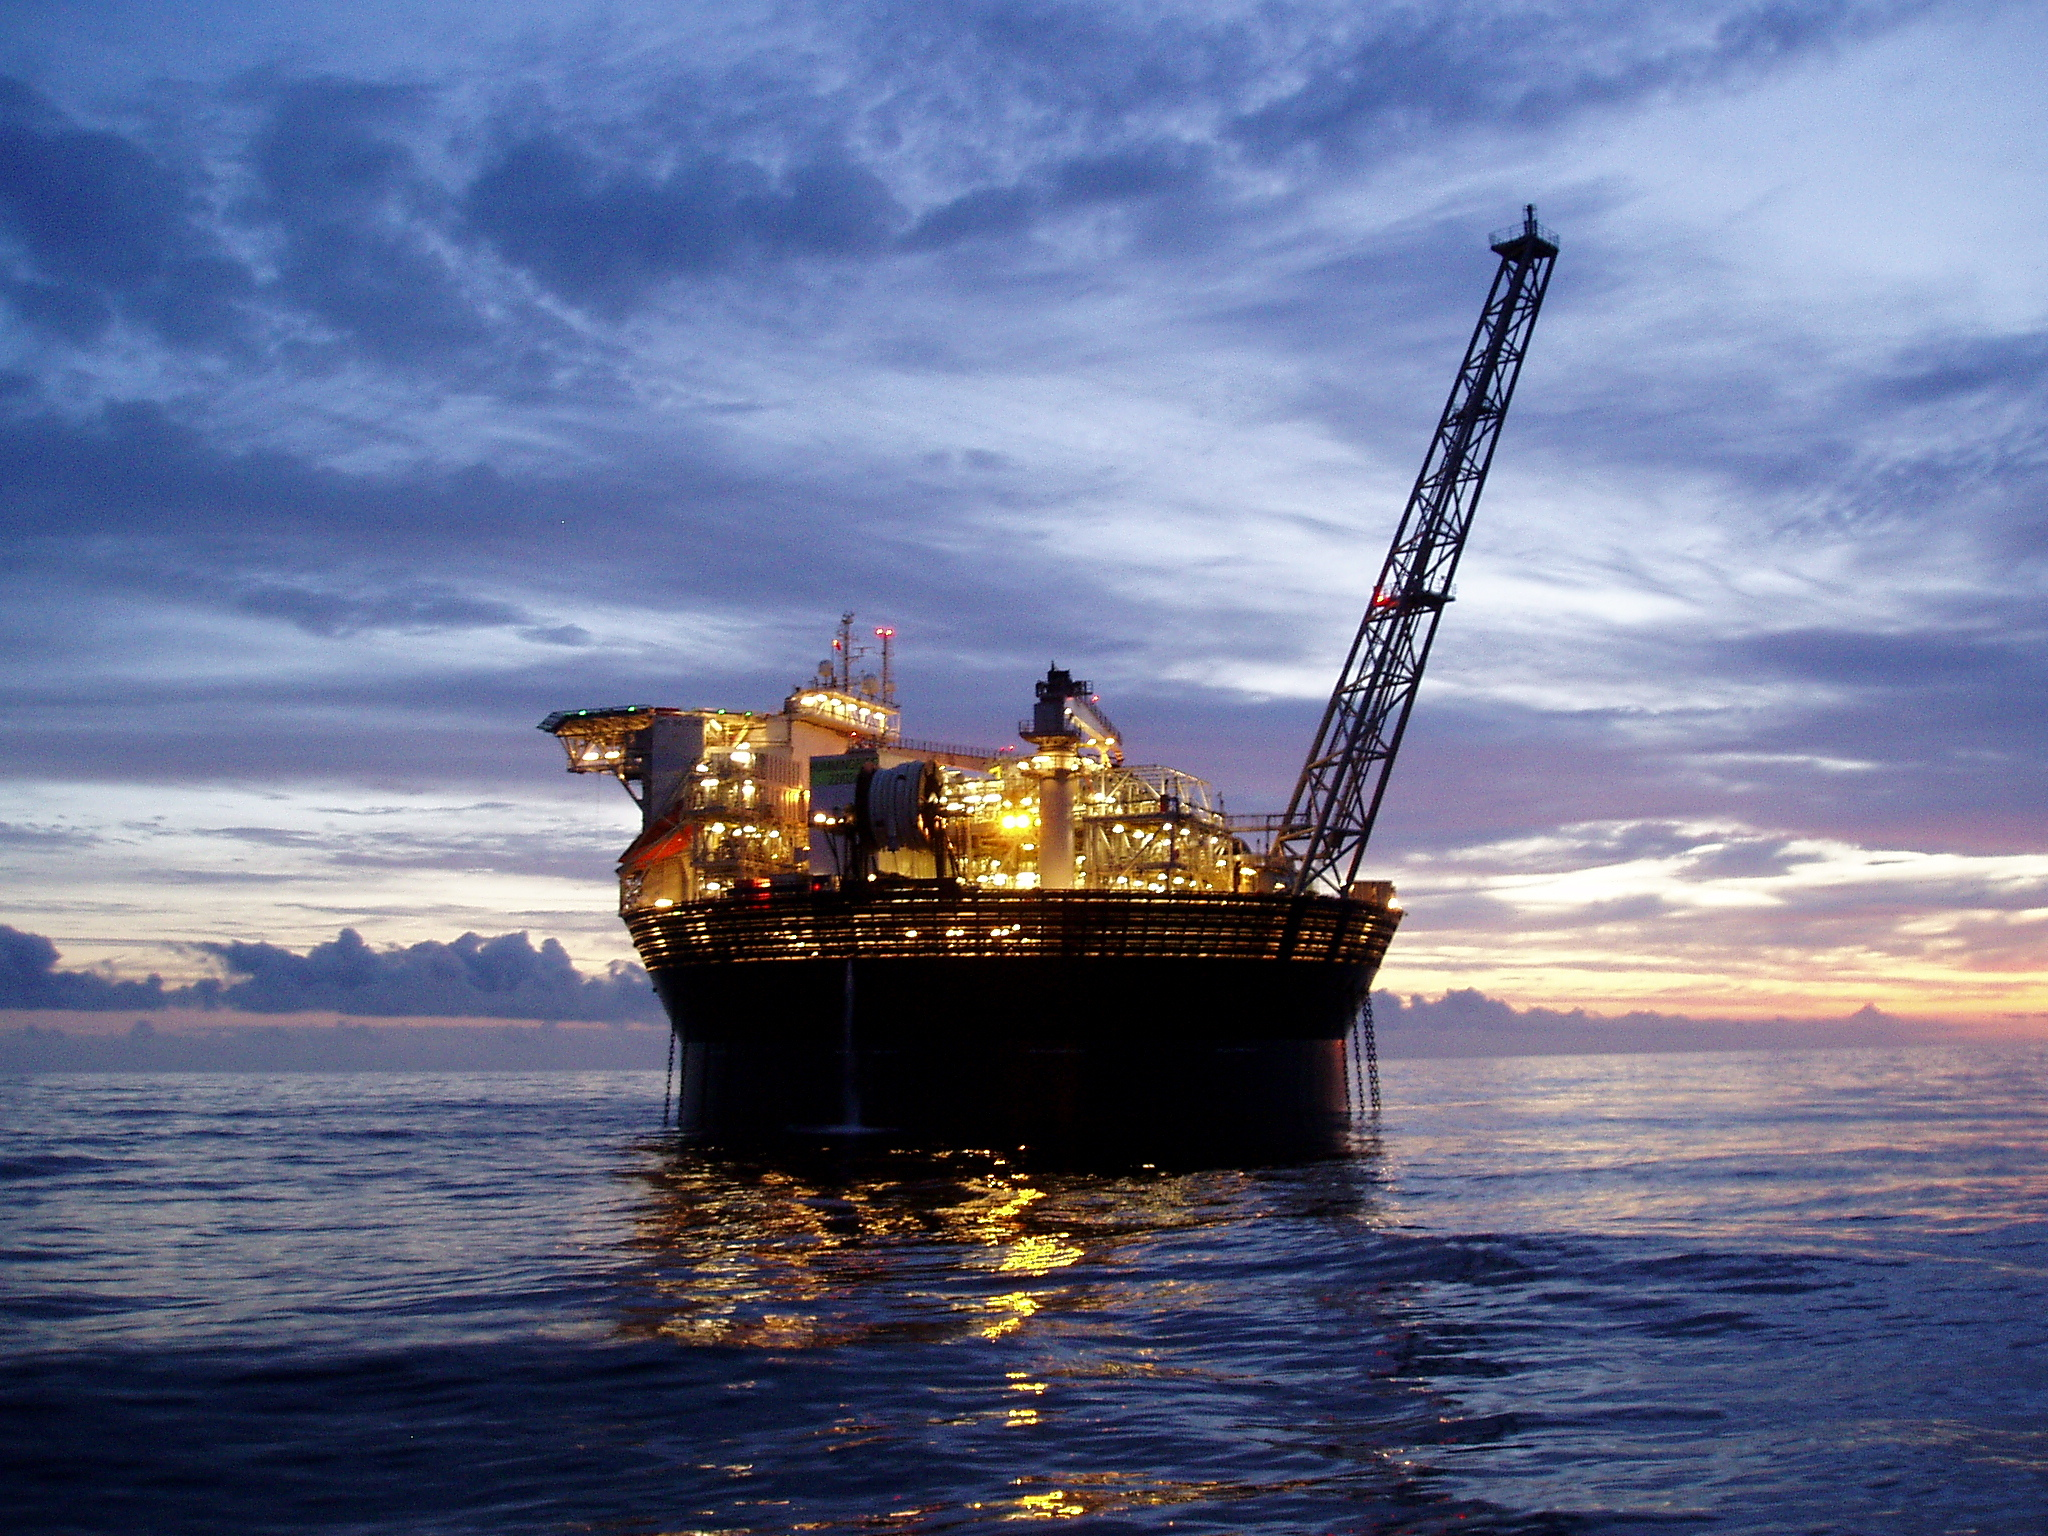 Centrica plans to sell its stake of Spirit Energy in 2020. The Hummingbird FPSO at Spirit Energy's Chestnut field.